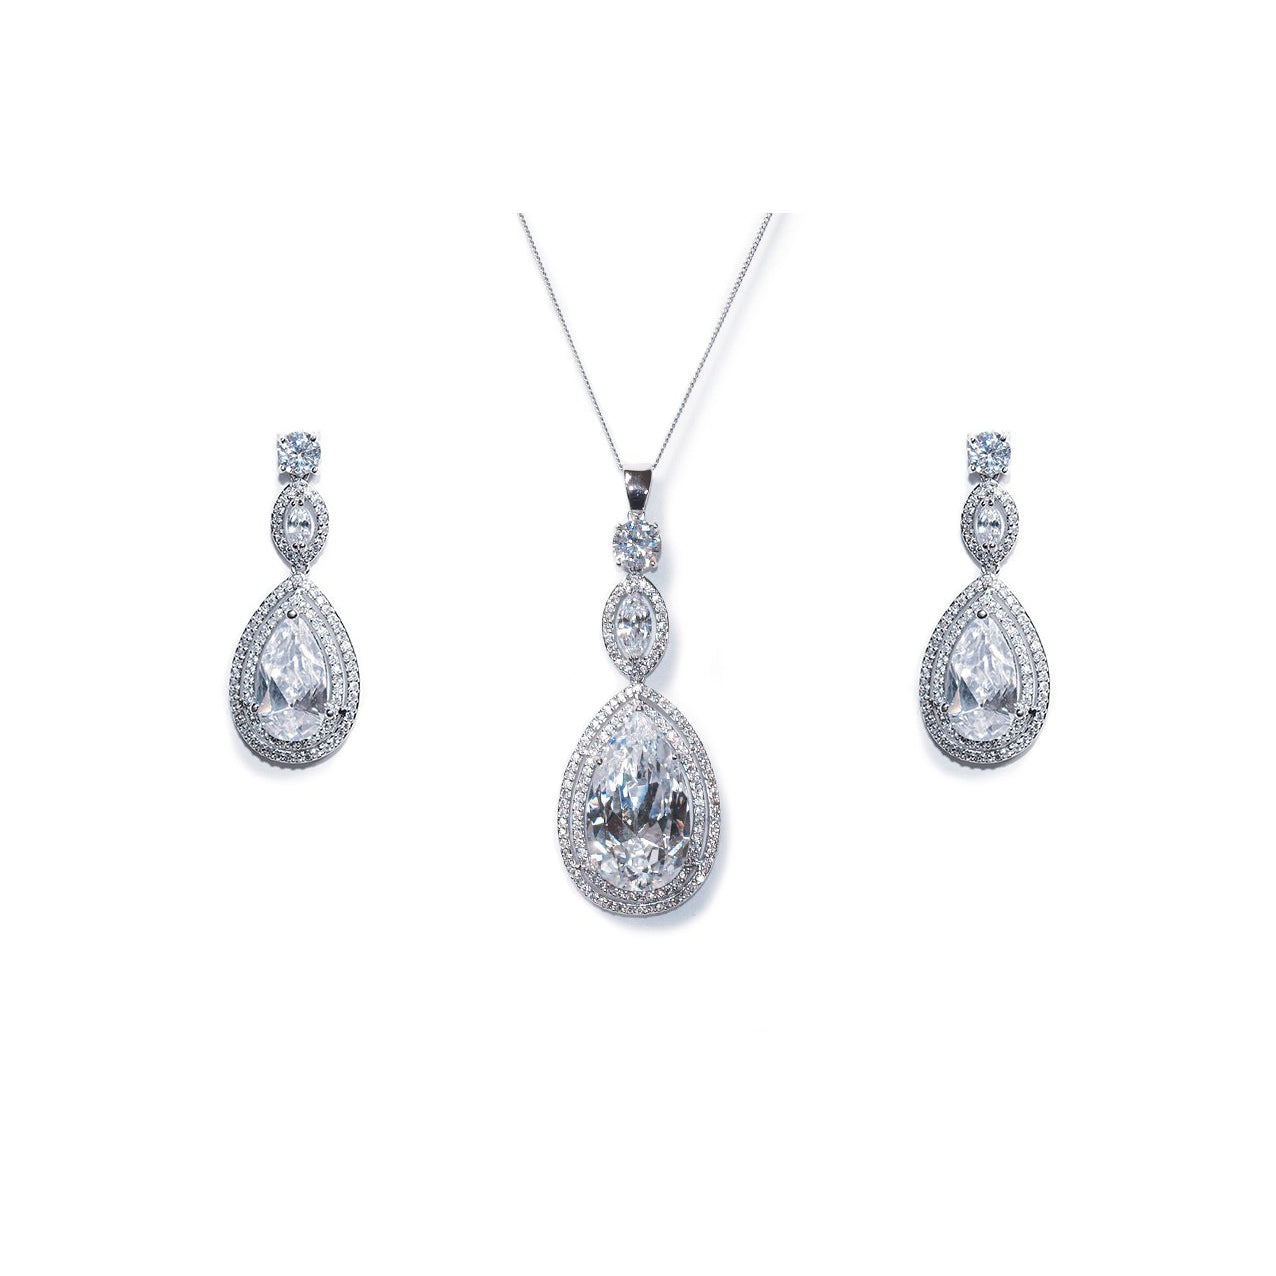 Parure Collier - Boucles d'oreilles<br>Cotton Club - MP Paris